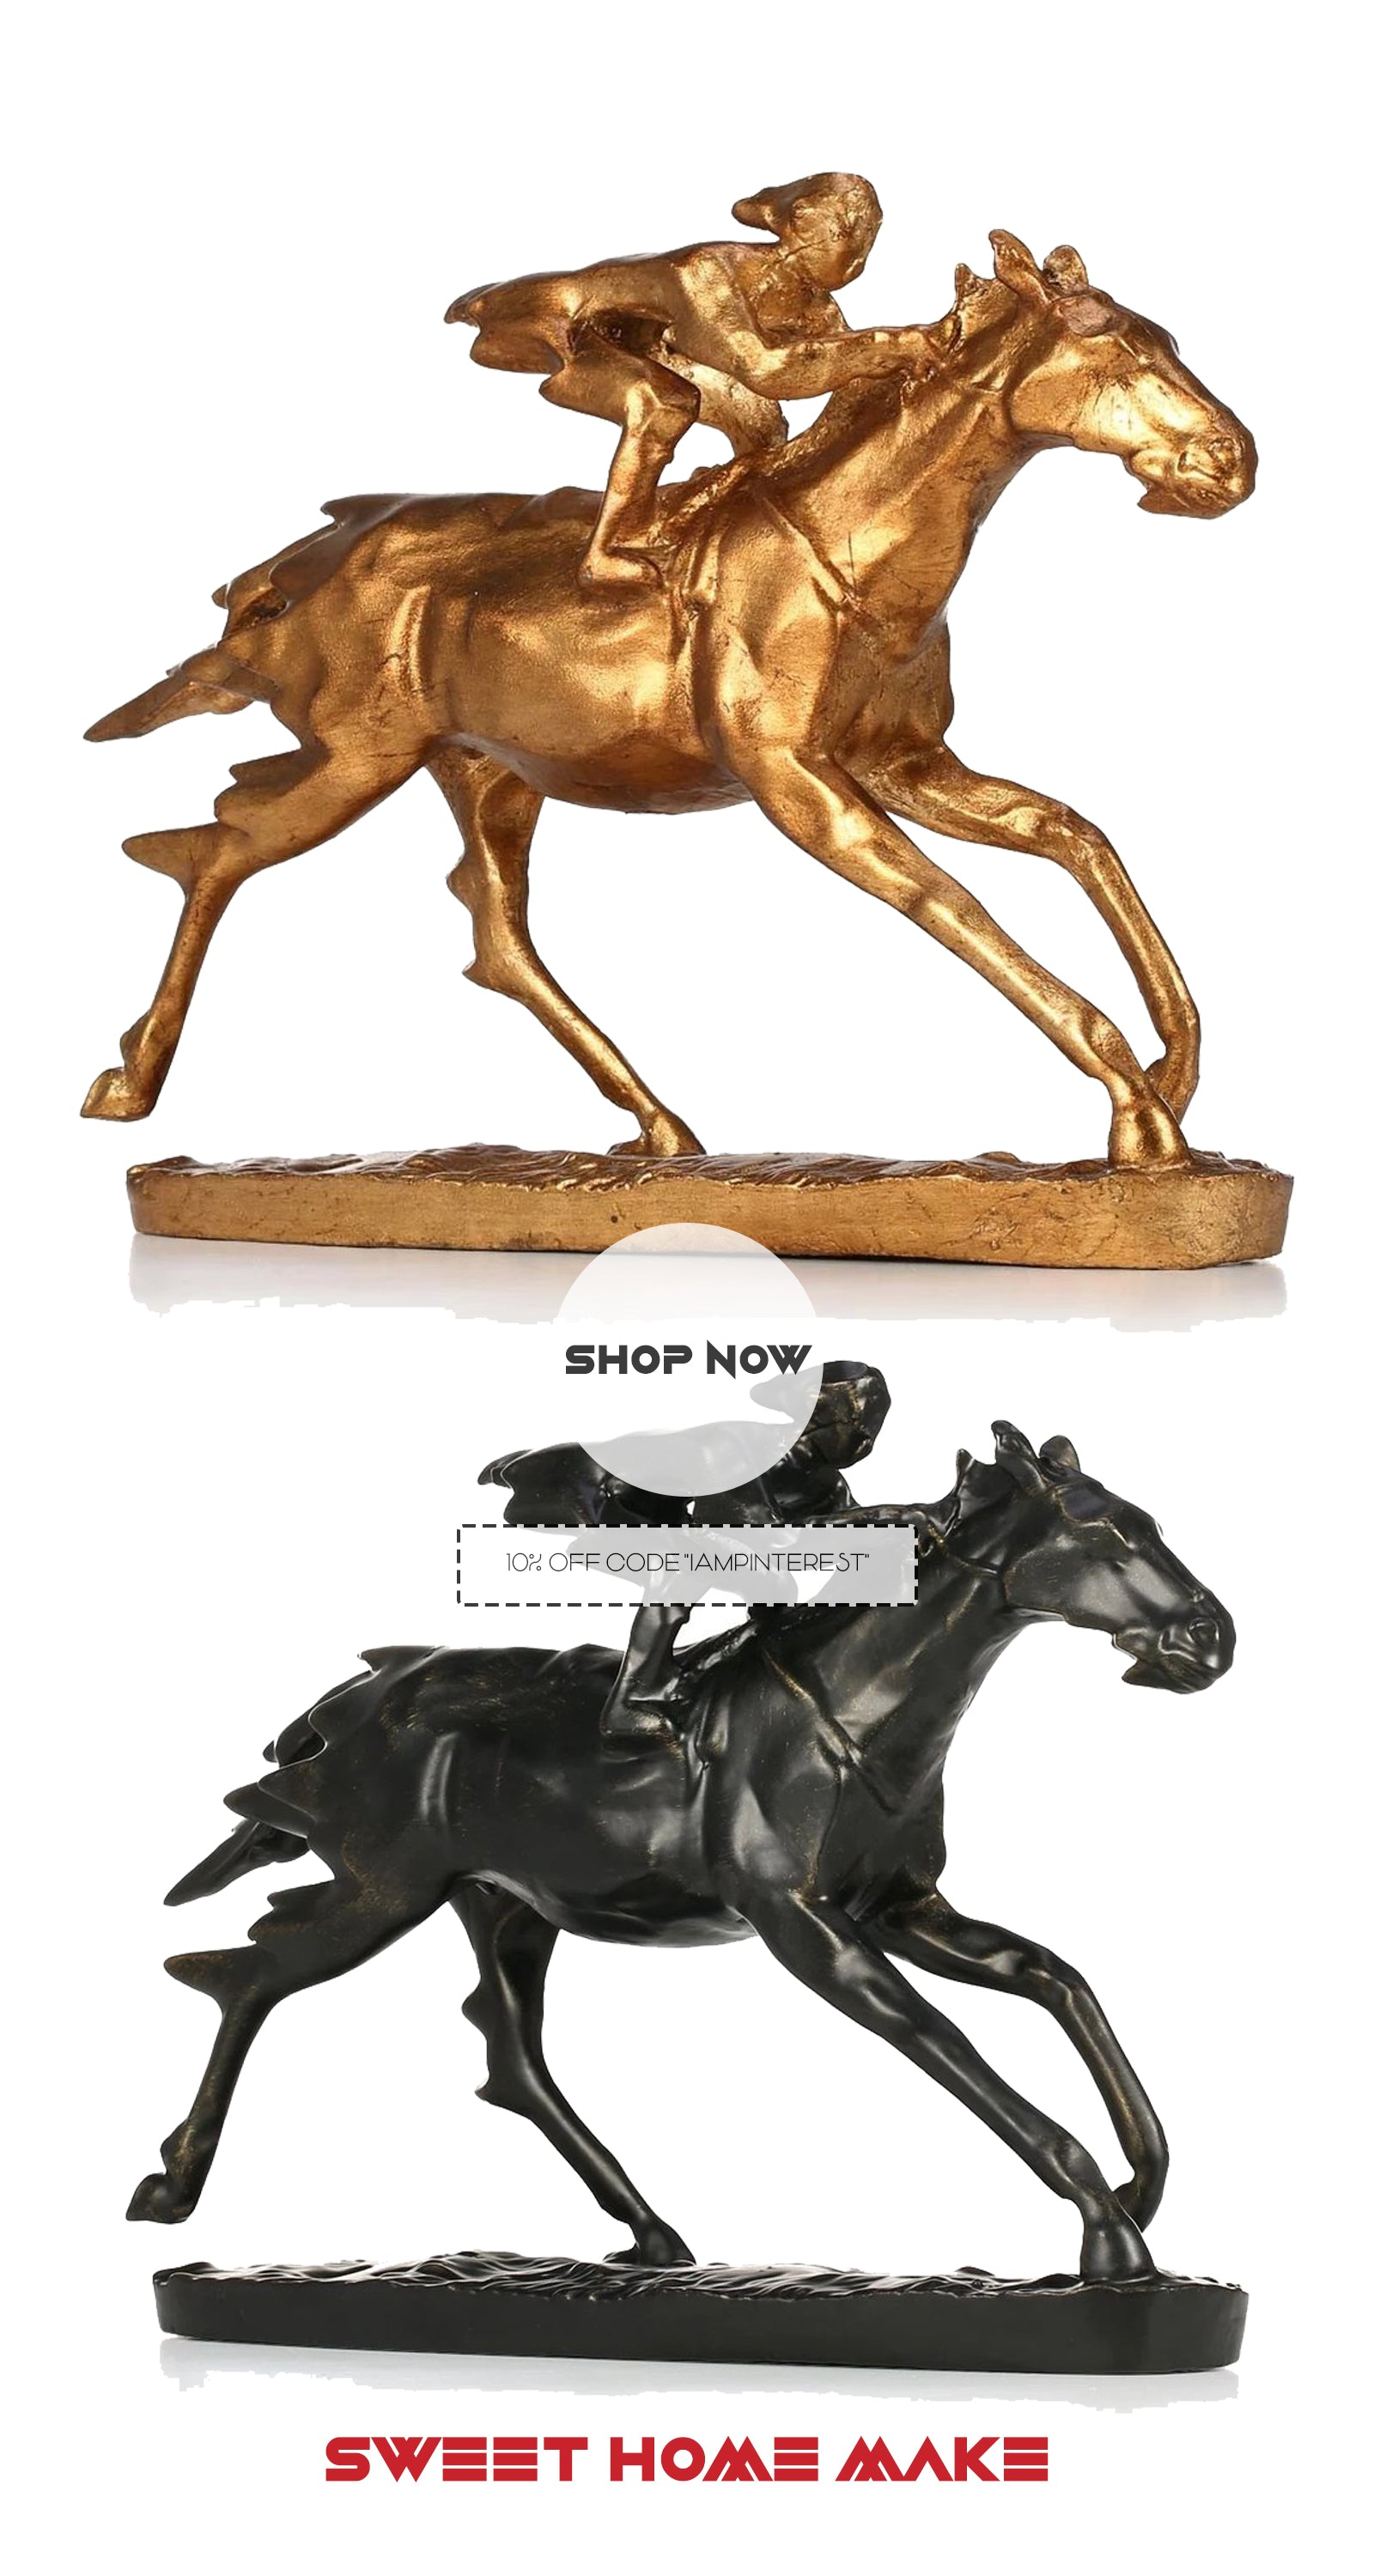 Small Horse Statue with Metal Gold and Black Horse Riding Decor